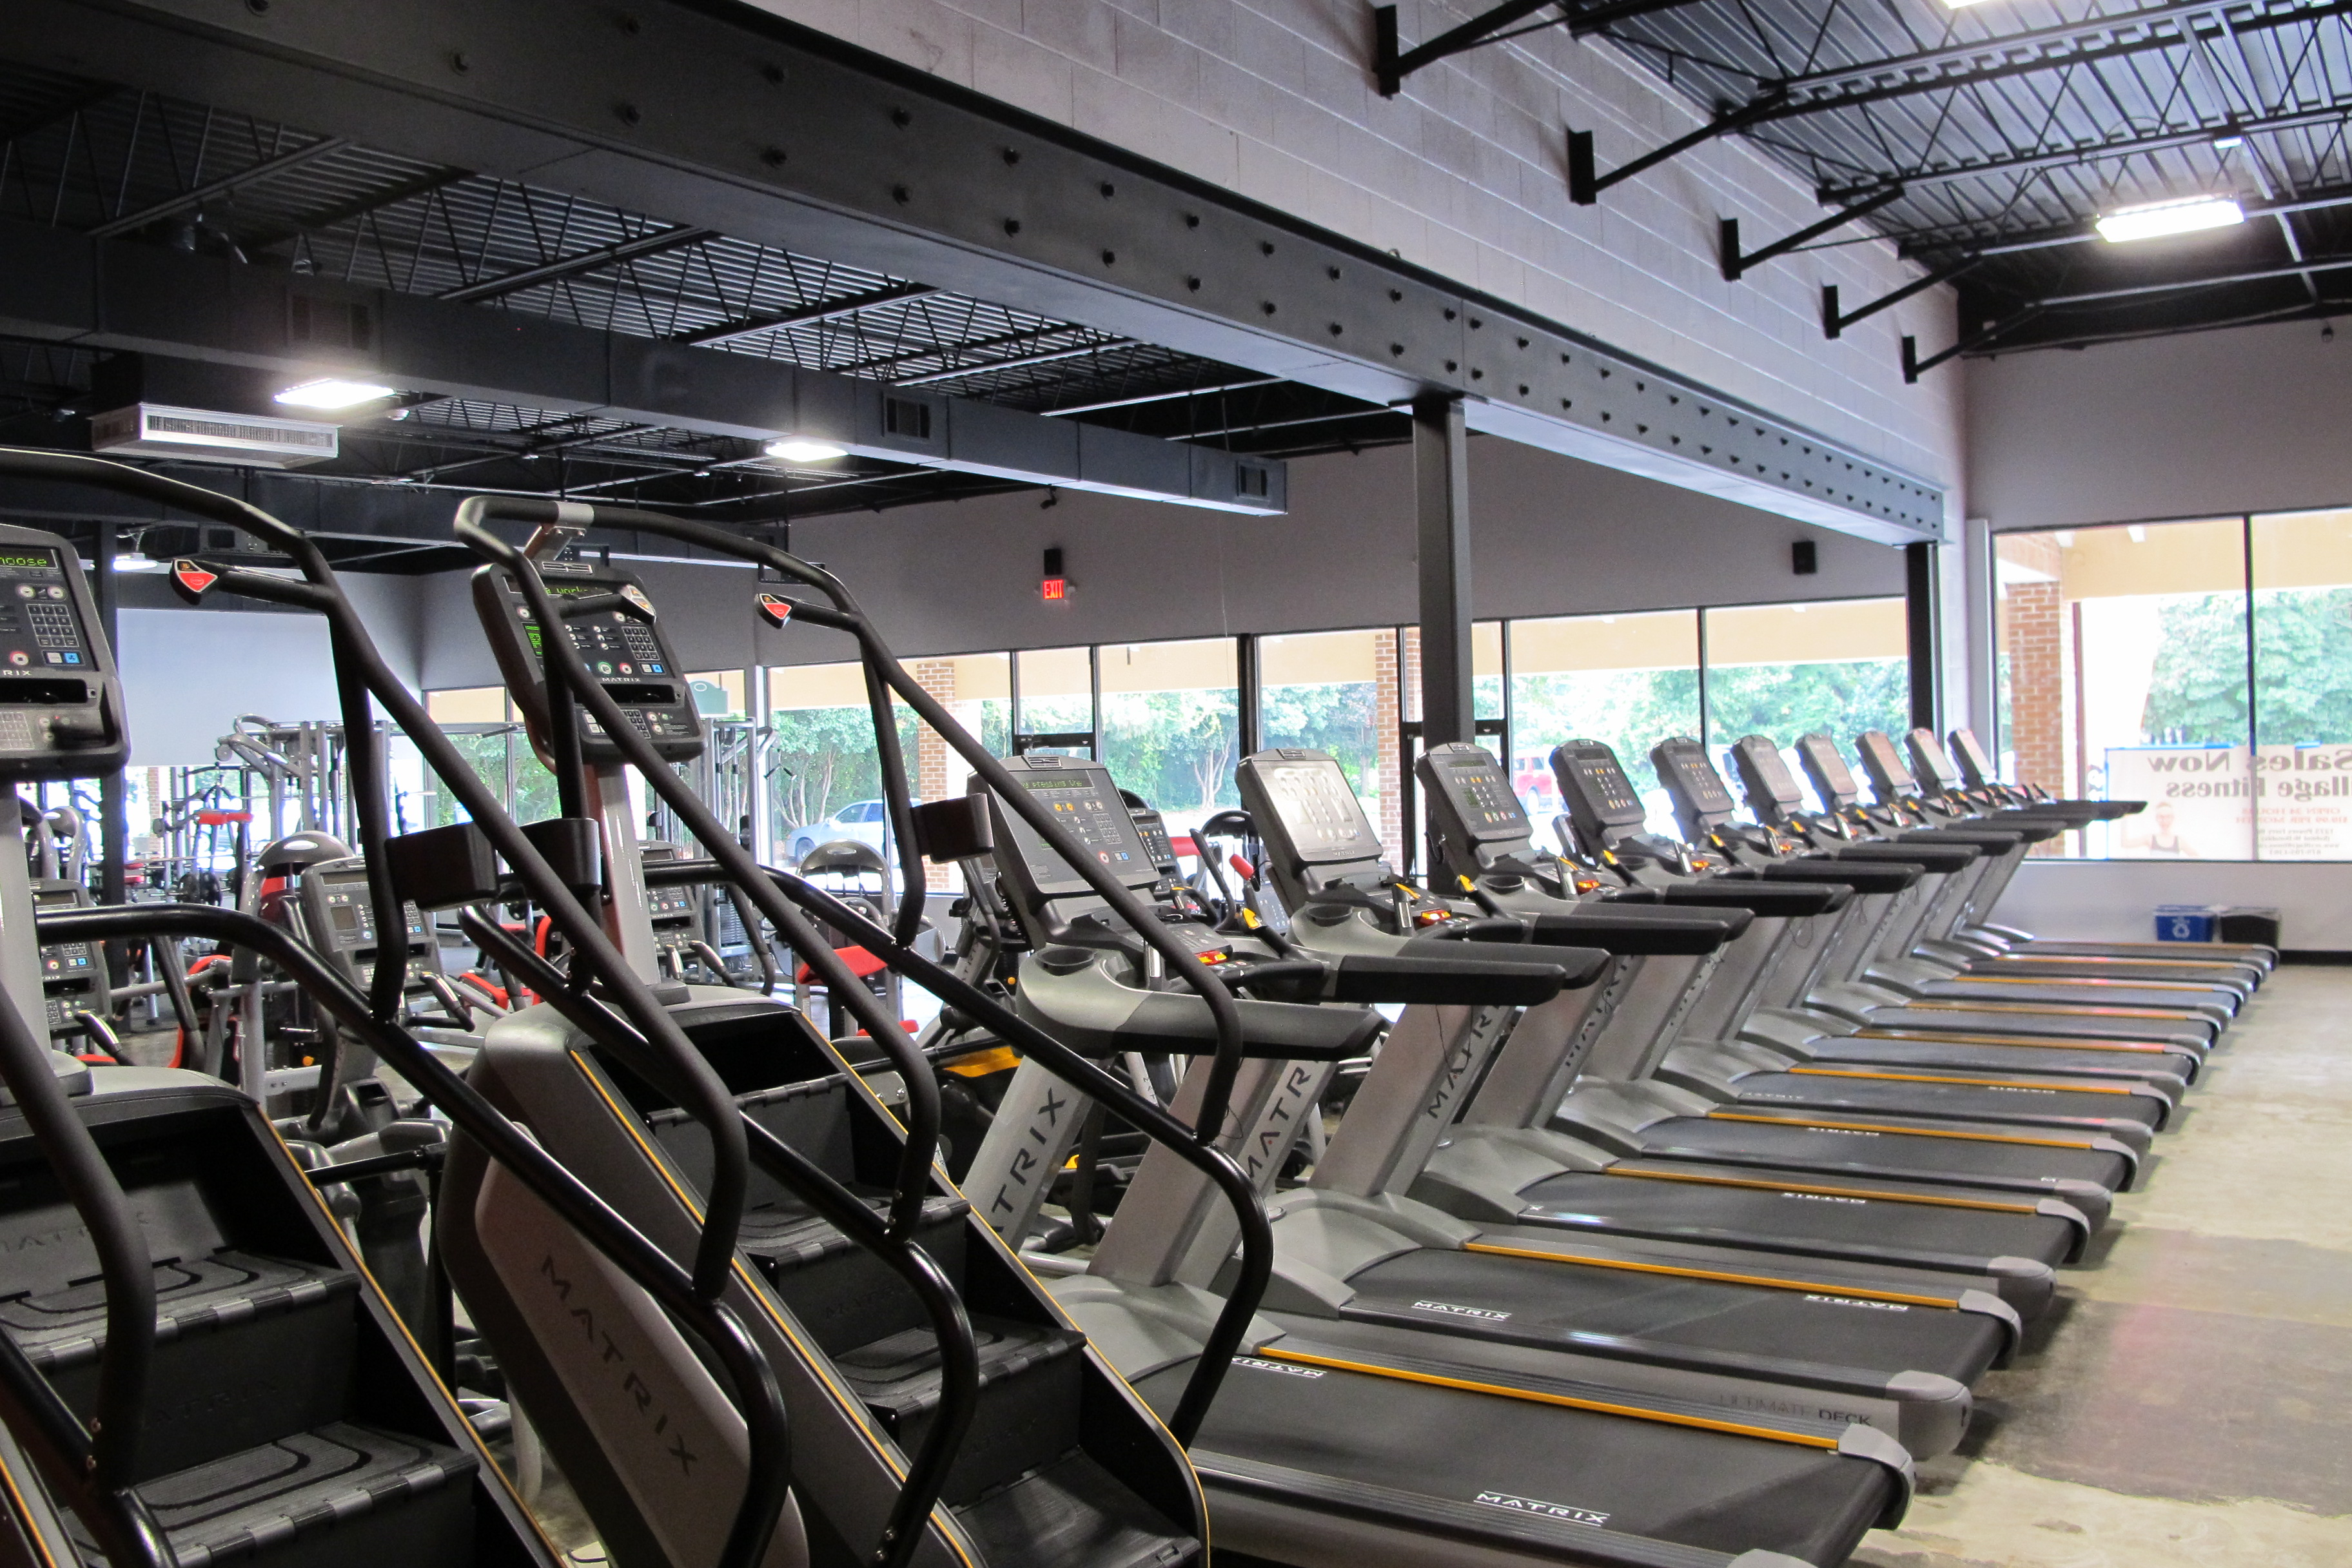 East Cobb Village Fitness